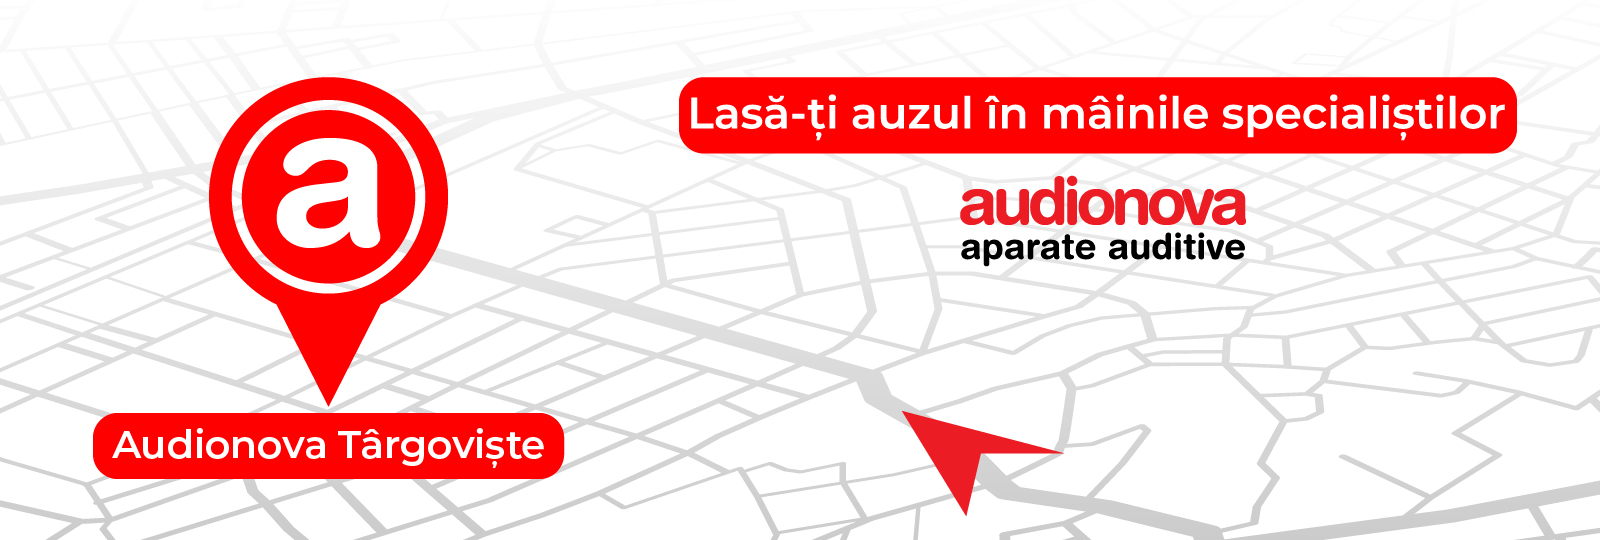 aparate auditive targoviste